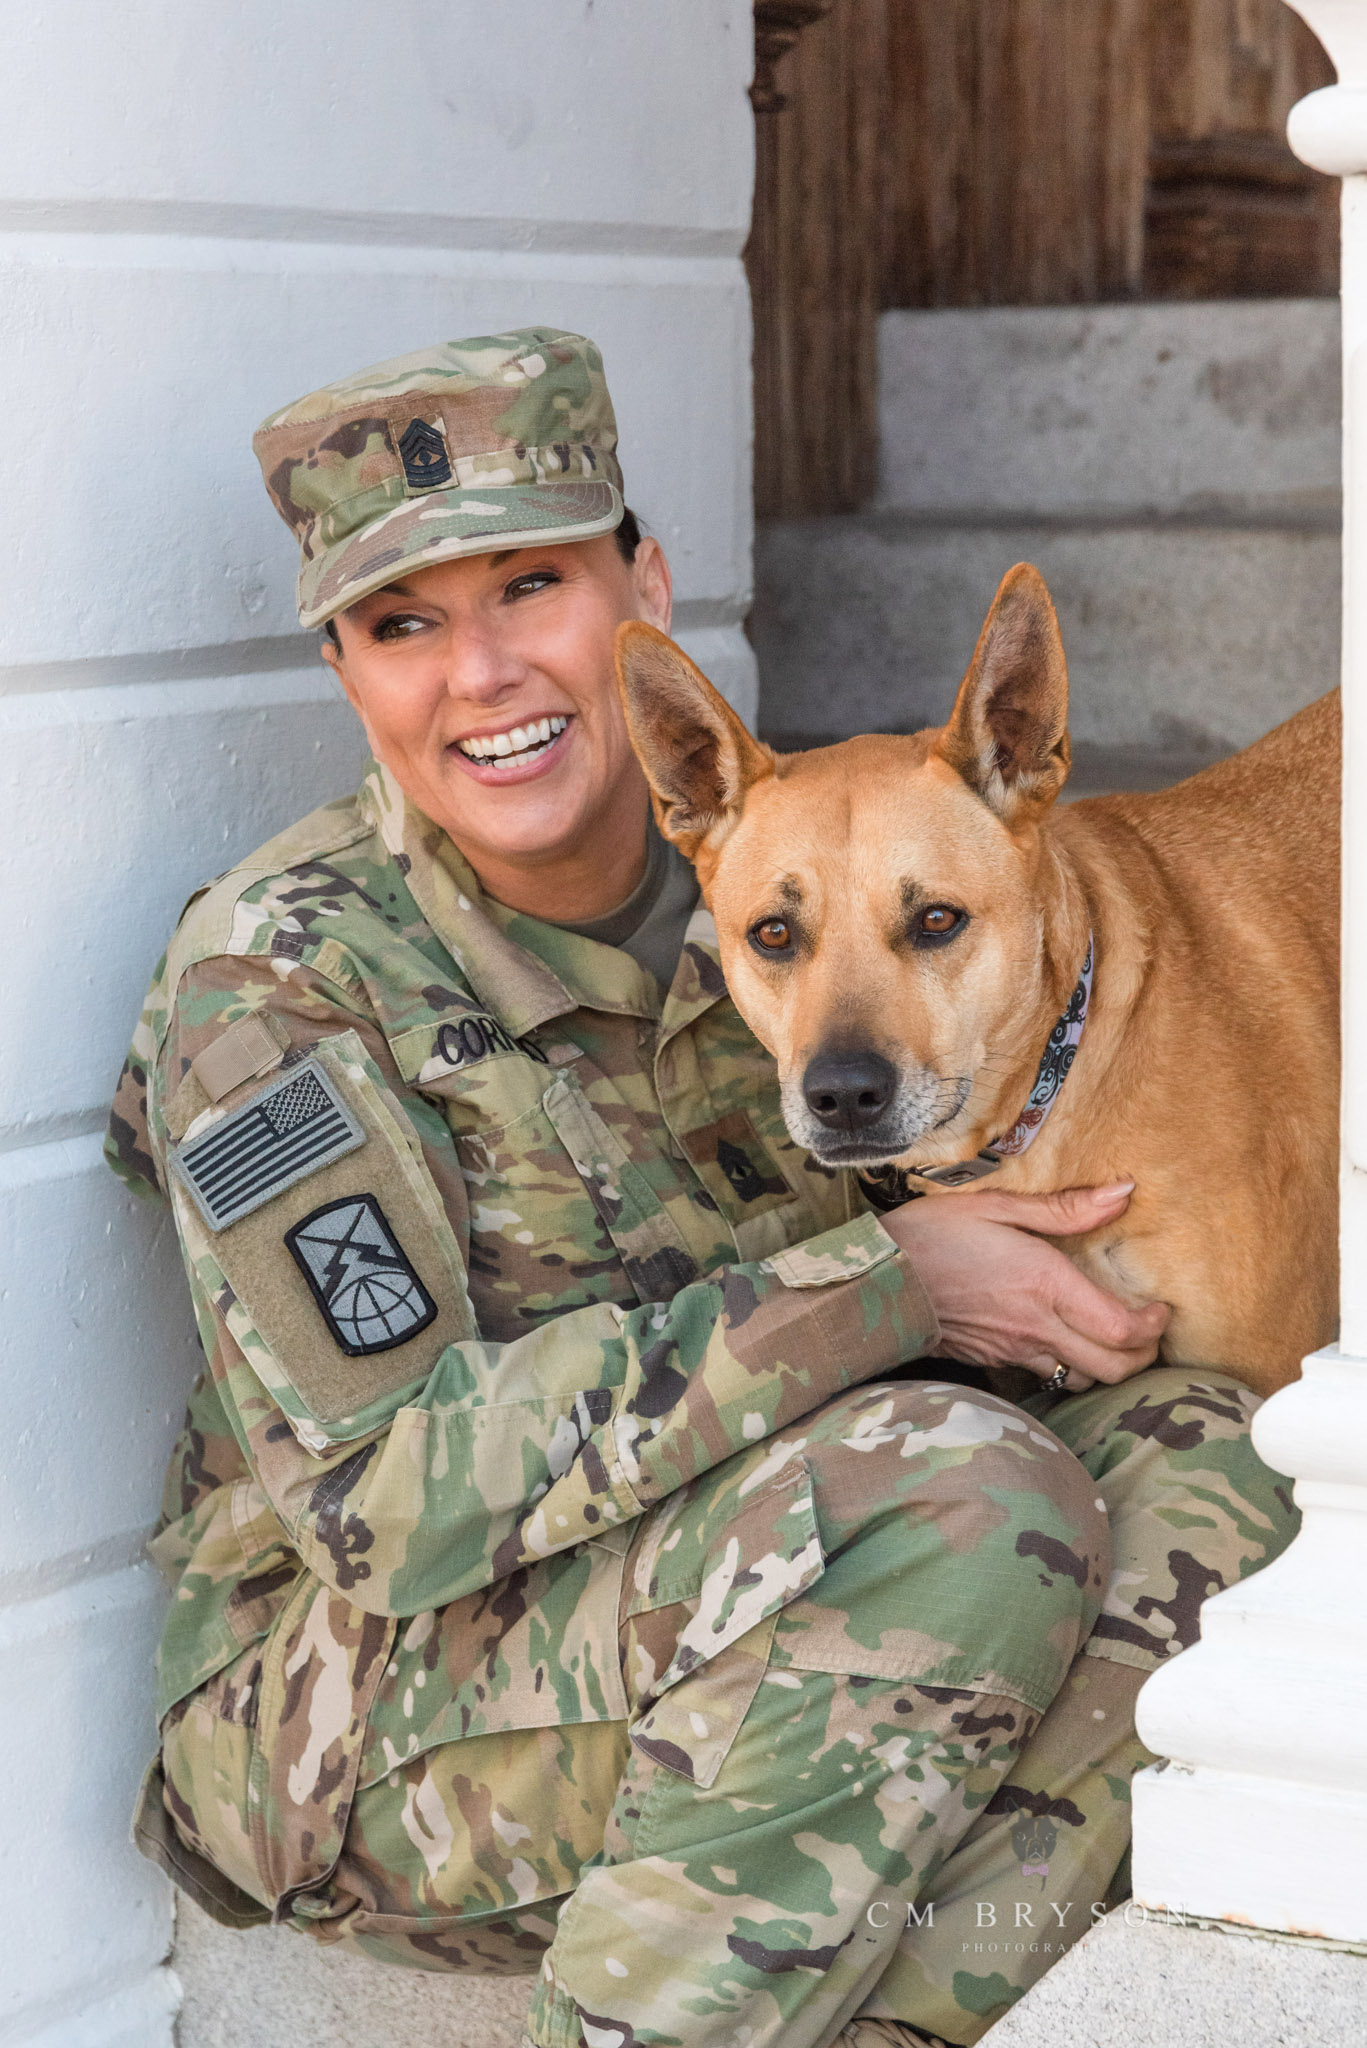 Military veteran celebrates the human animal bond with her rescued dog